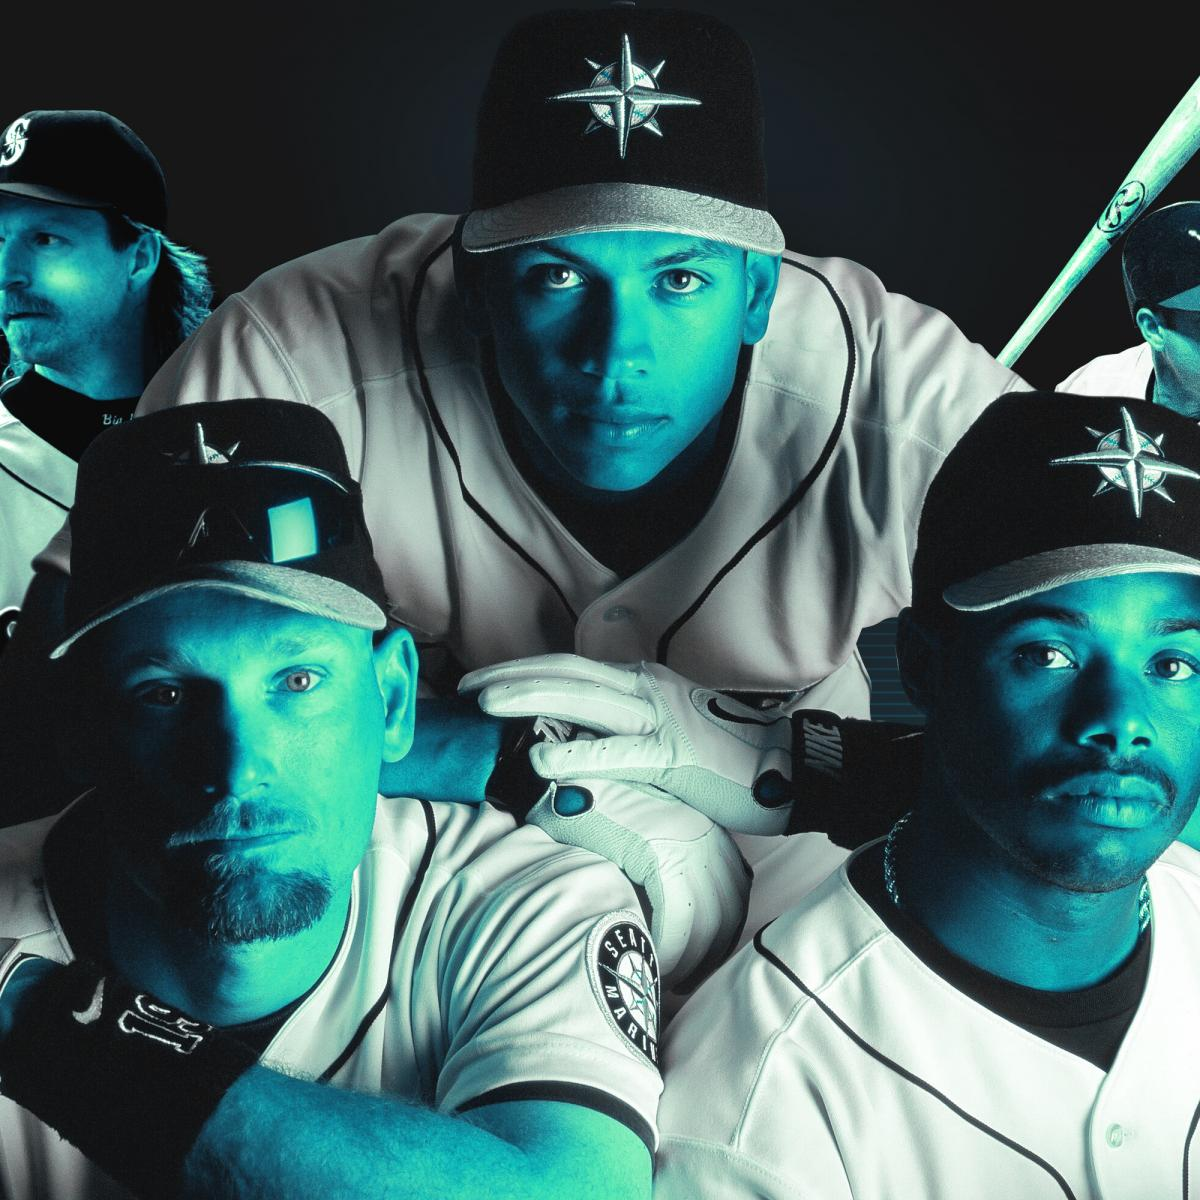 f3a12339b6 A-Rod, Ken Griffey Jr. and the Greatest Home Run-Hitting Team in MLB  History | Bleacher Report | Latest News, Videos and Highlights